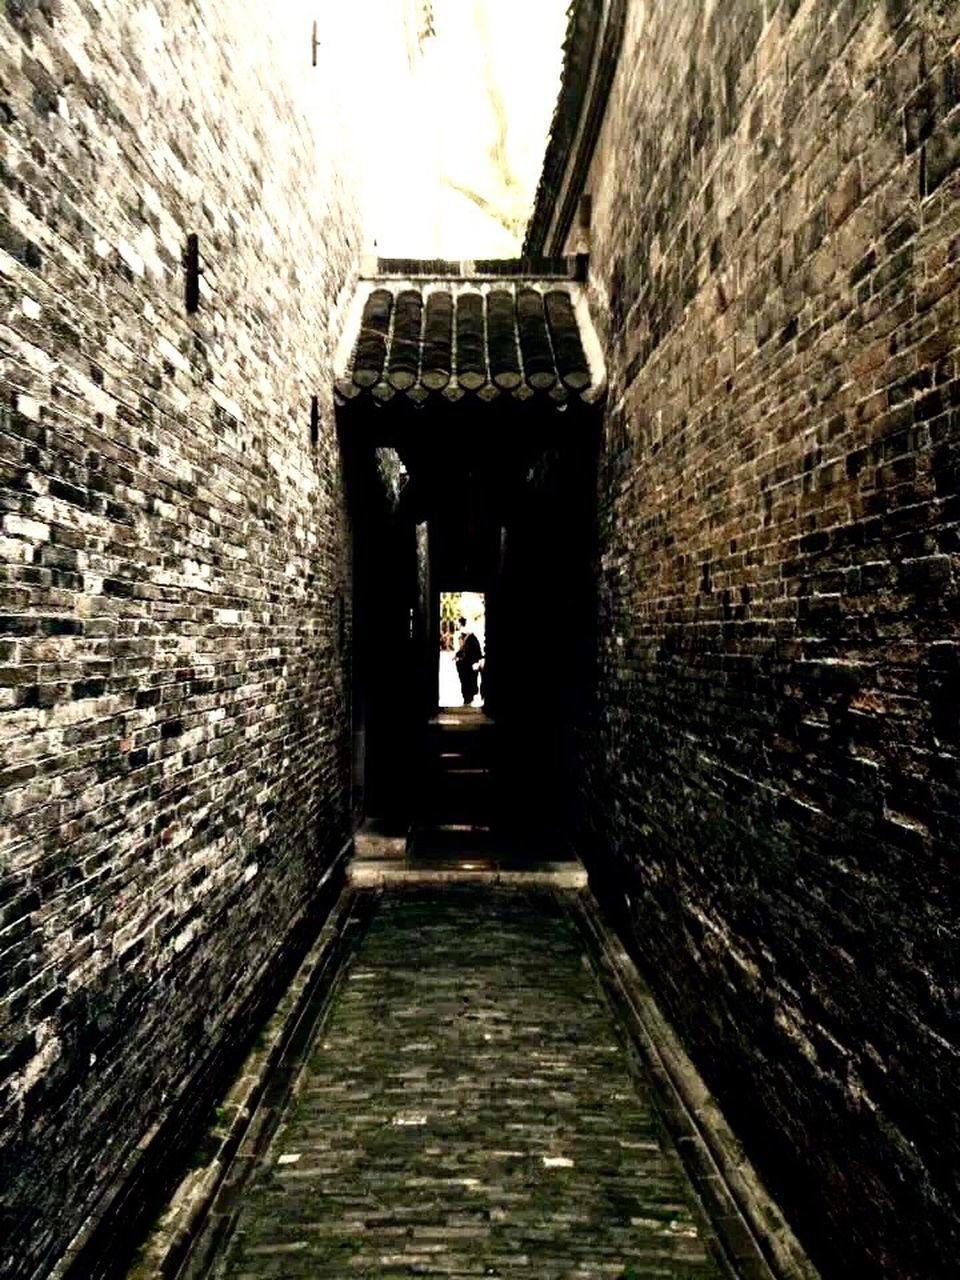 architecture, built structure, brick wall, the way forward, building exterior, day, indoors, no people, walkway